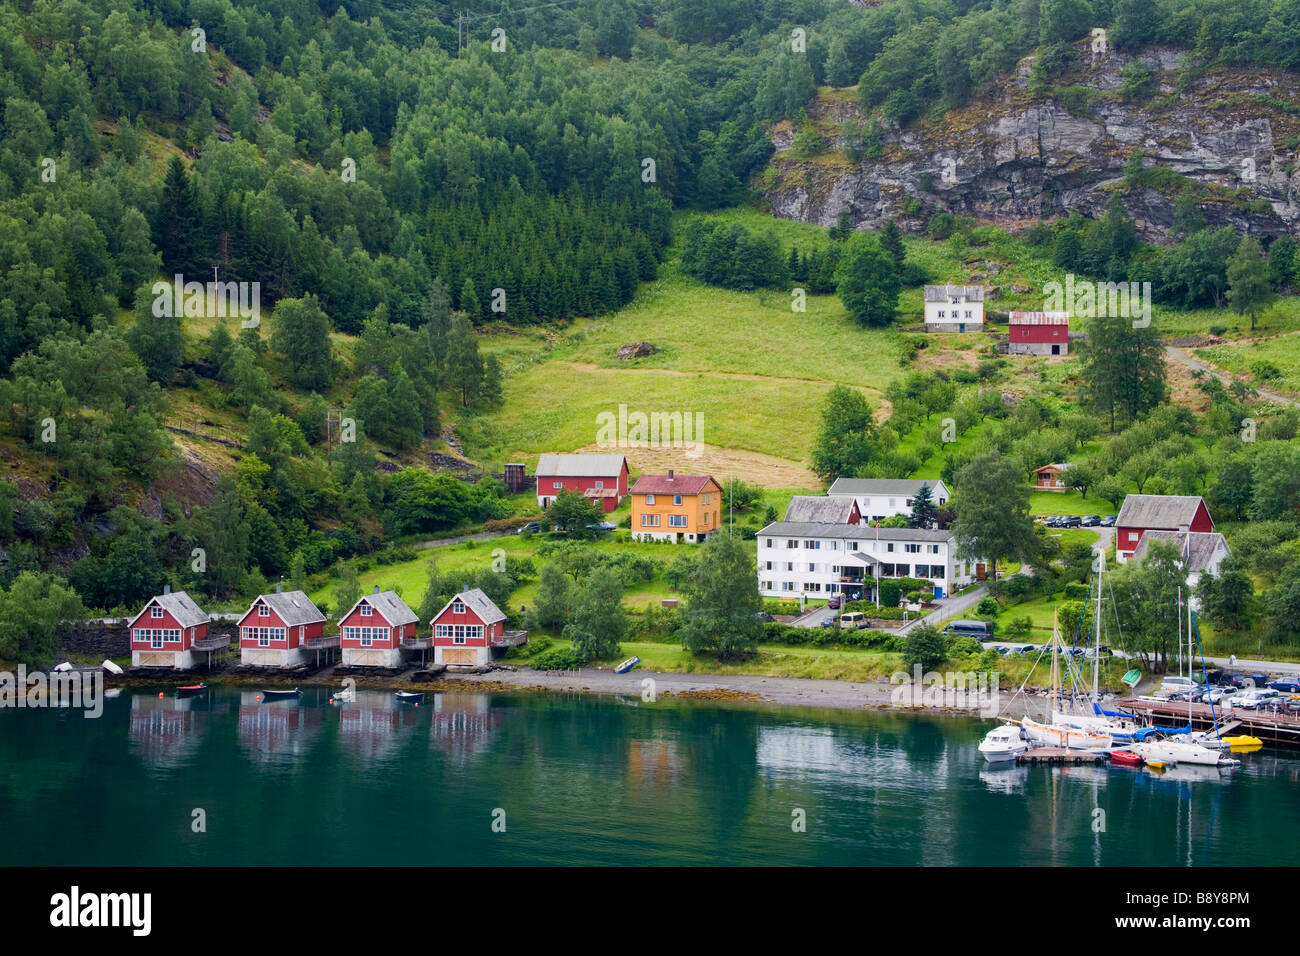 High angle view of a village on the coast, Flam, Aurlandsfjord, Sogn Og Fjordane, Norway - Stock Image